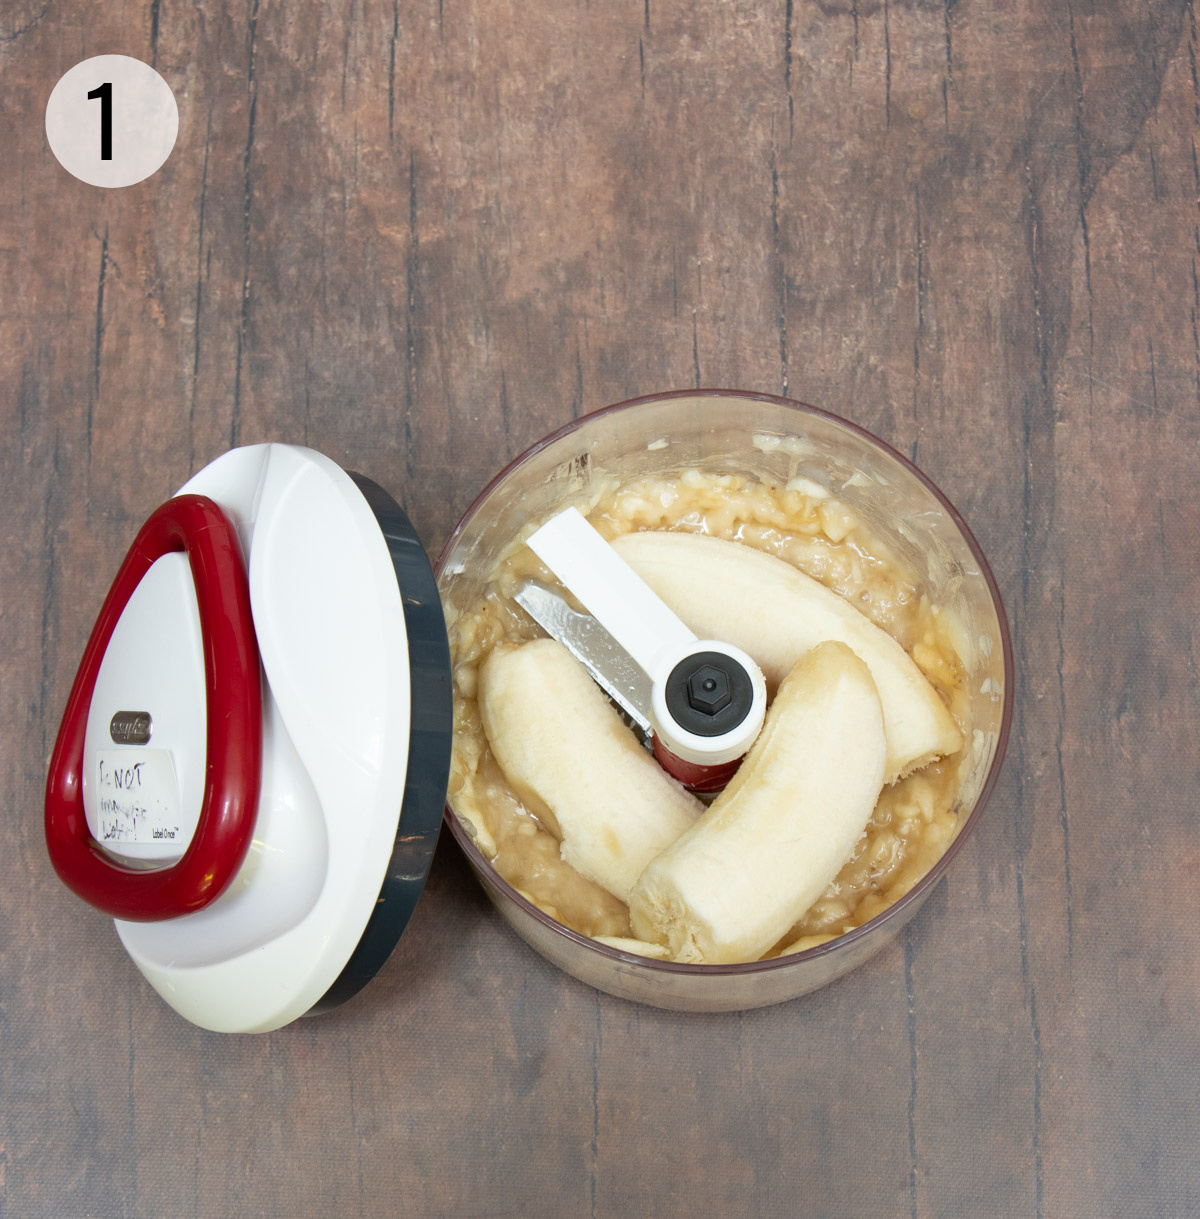 Handheld food chopper with bananas to puree and white lid with red handle on left side.